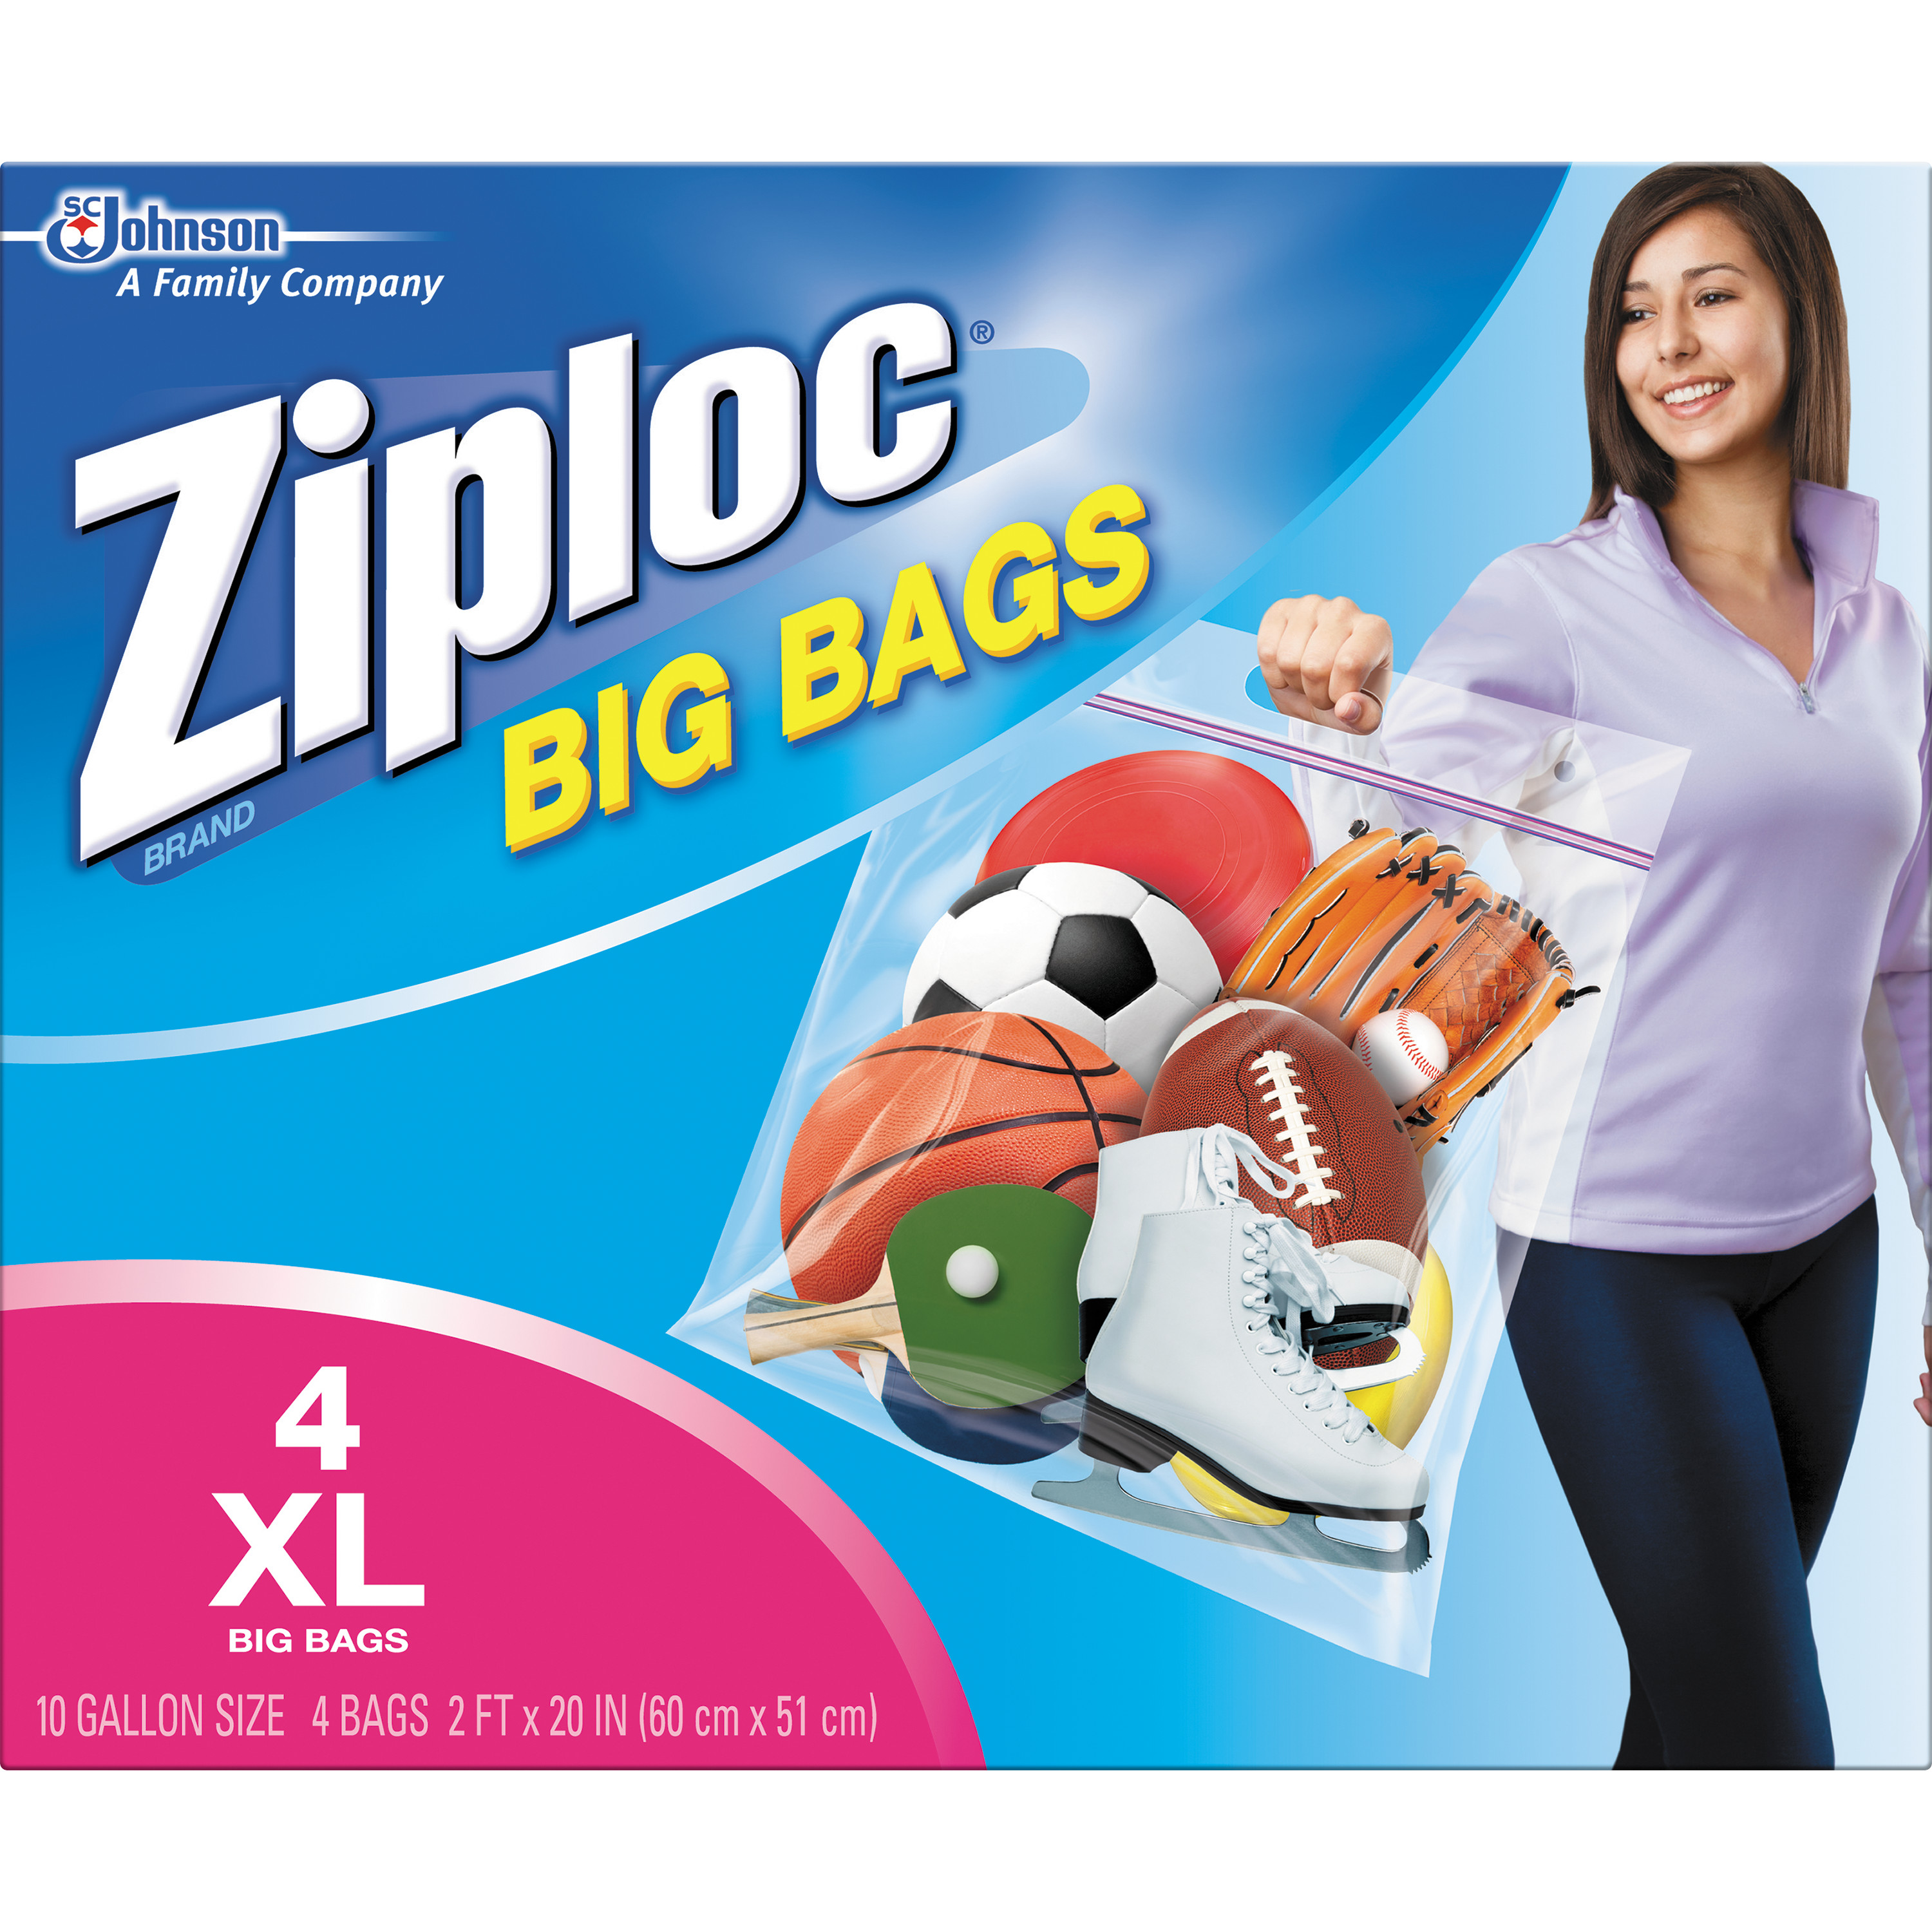 Ziploc Heavy Duty XL Big Bags, 4 ct